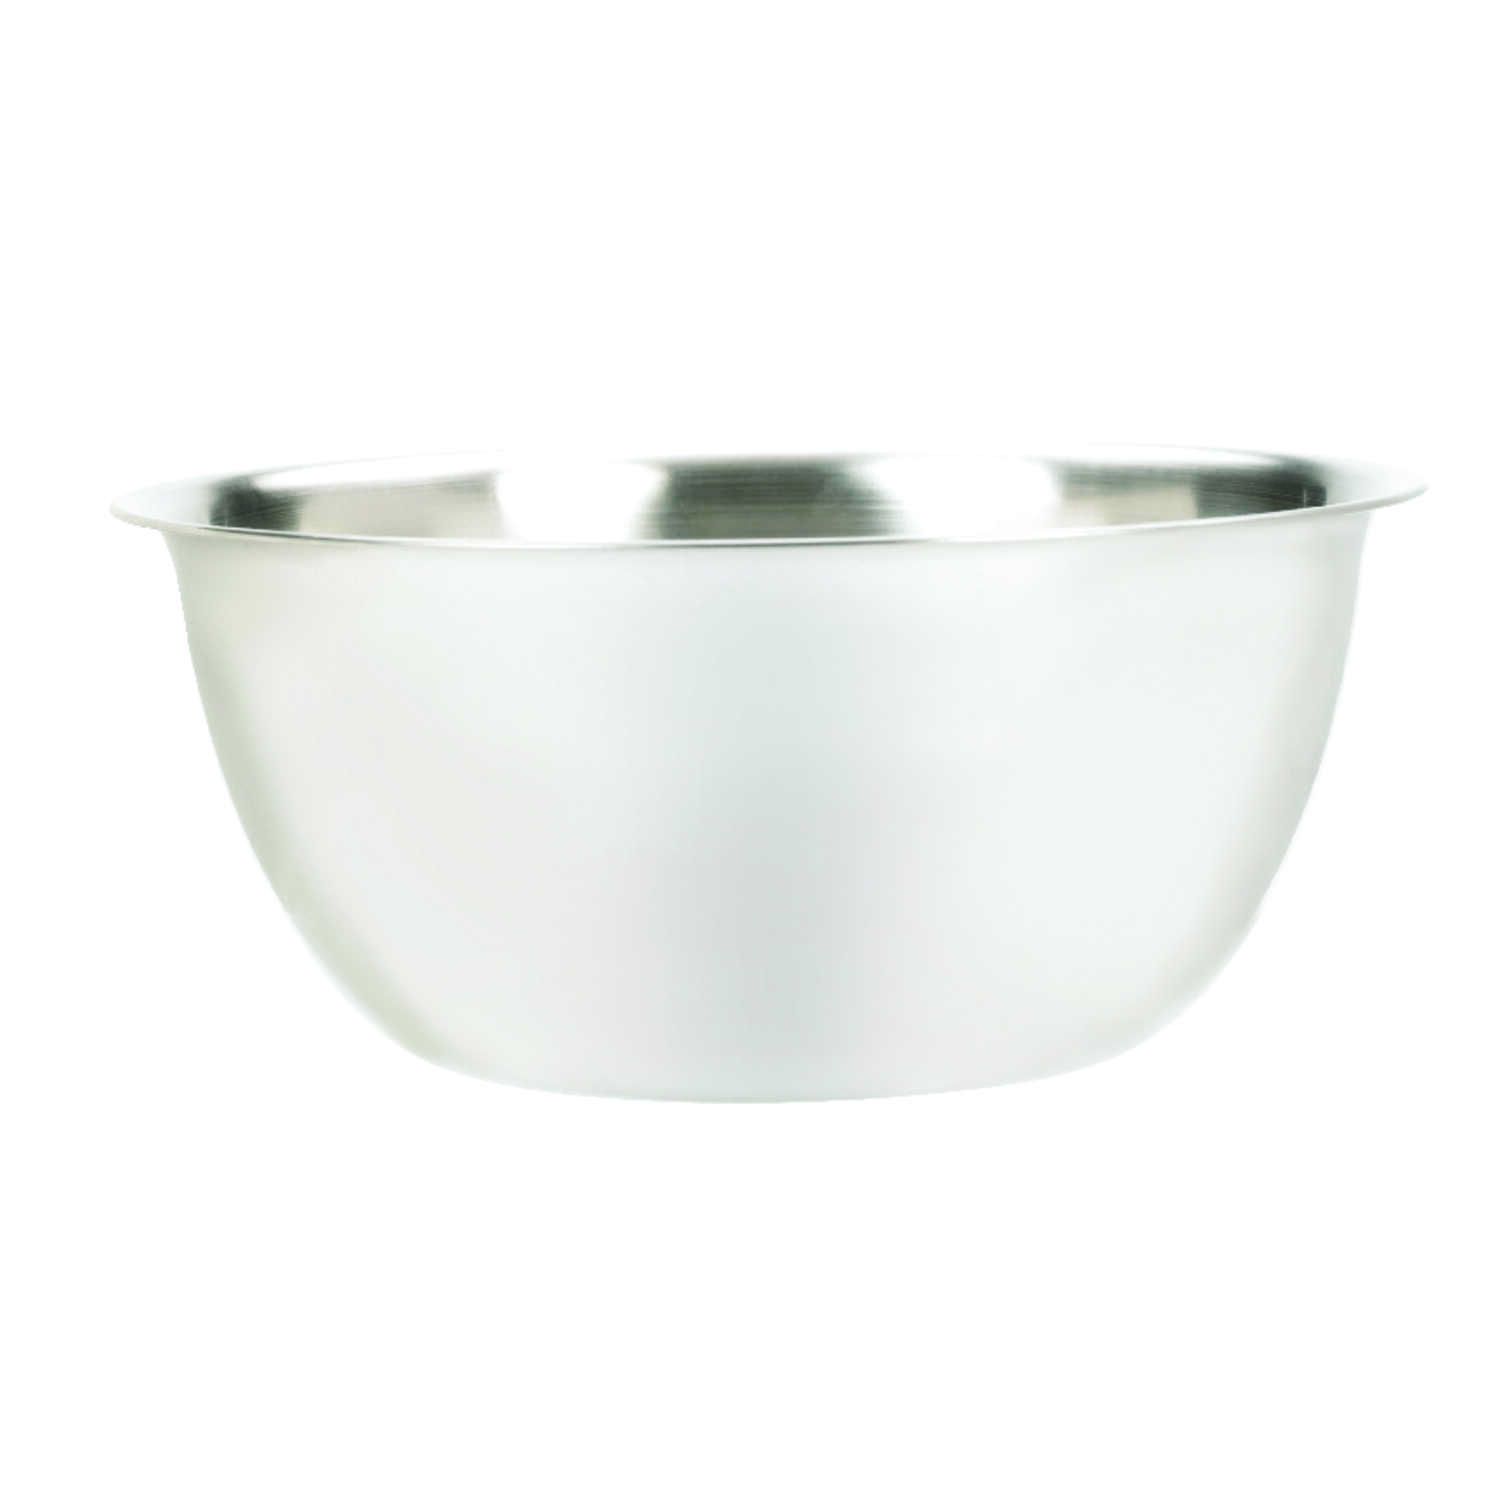 Fox Run  6.25 qt. Stainless Steel  Black  Mixing Bowl  1 count